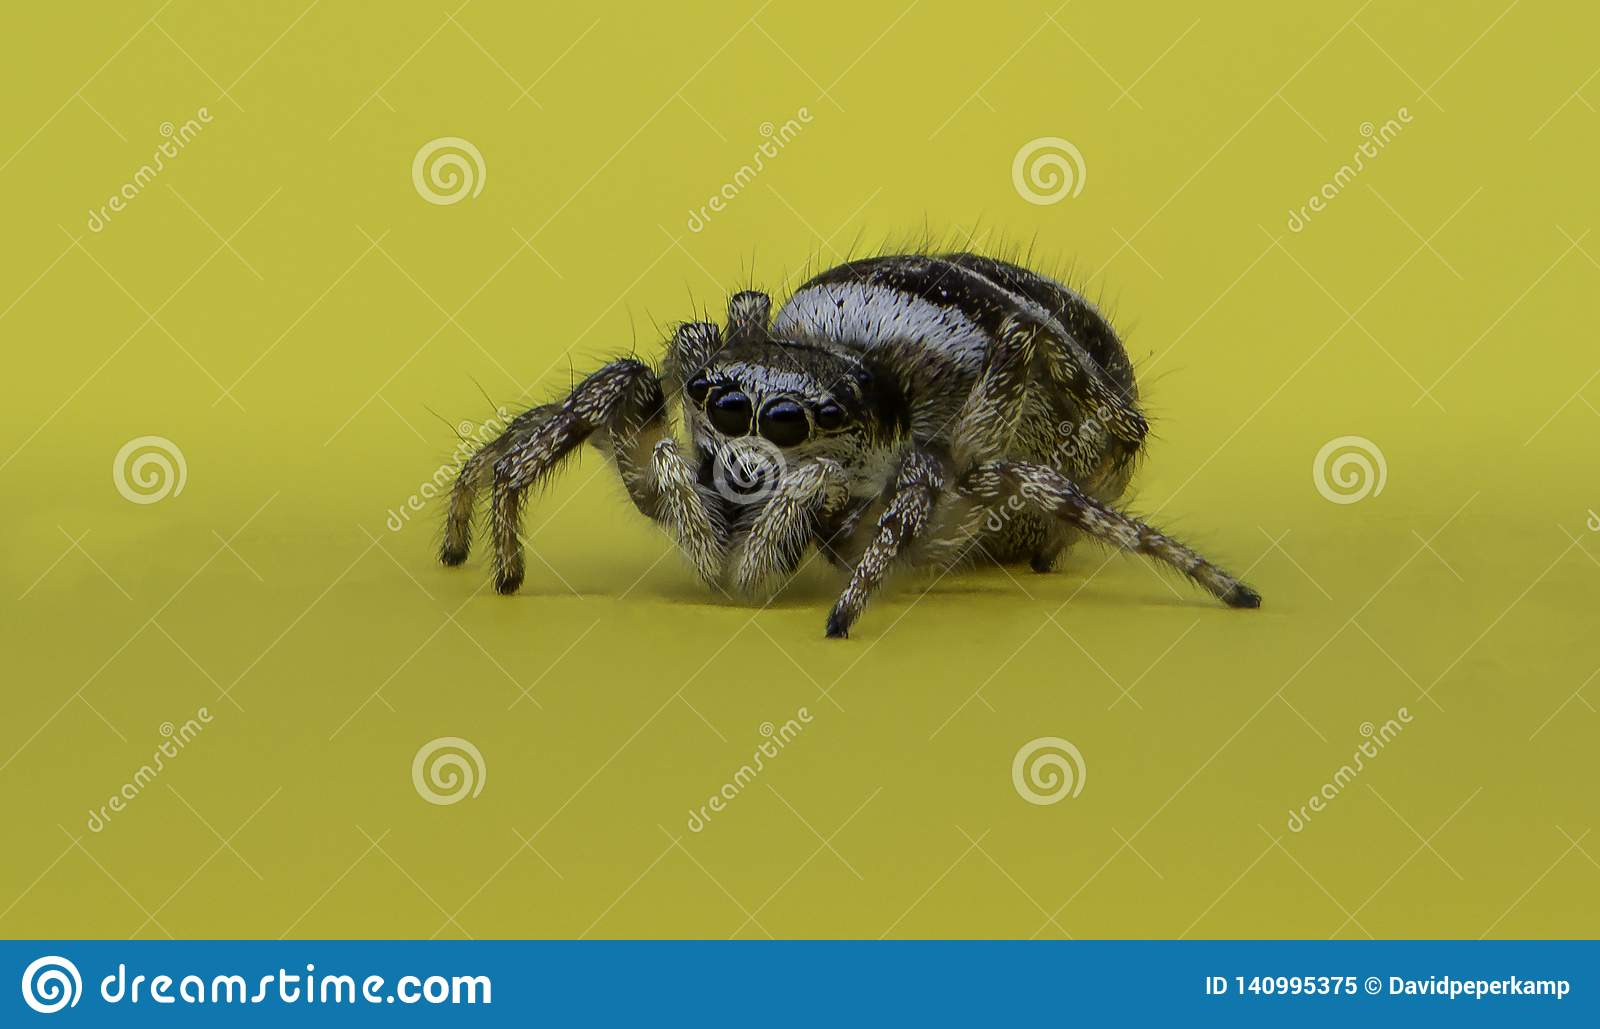 Jumping Spider ( Salticidae ) on a yellow memo note, Macro photo